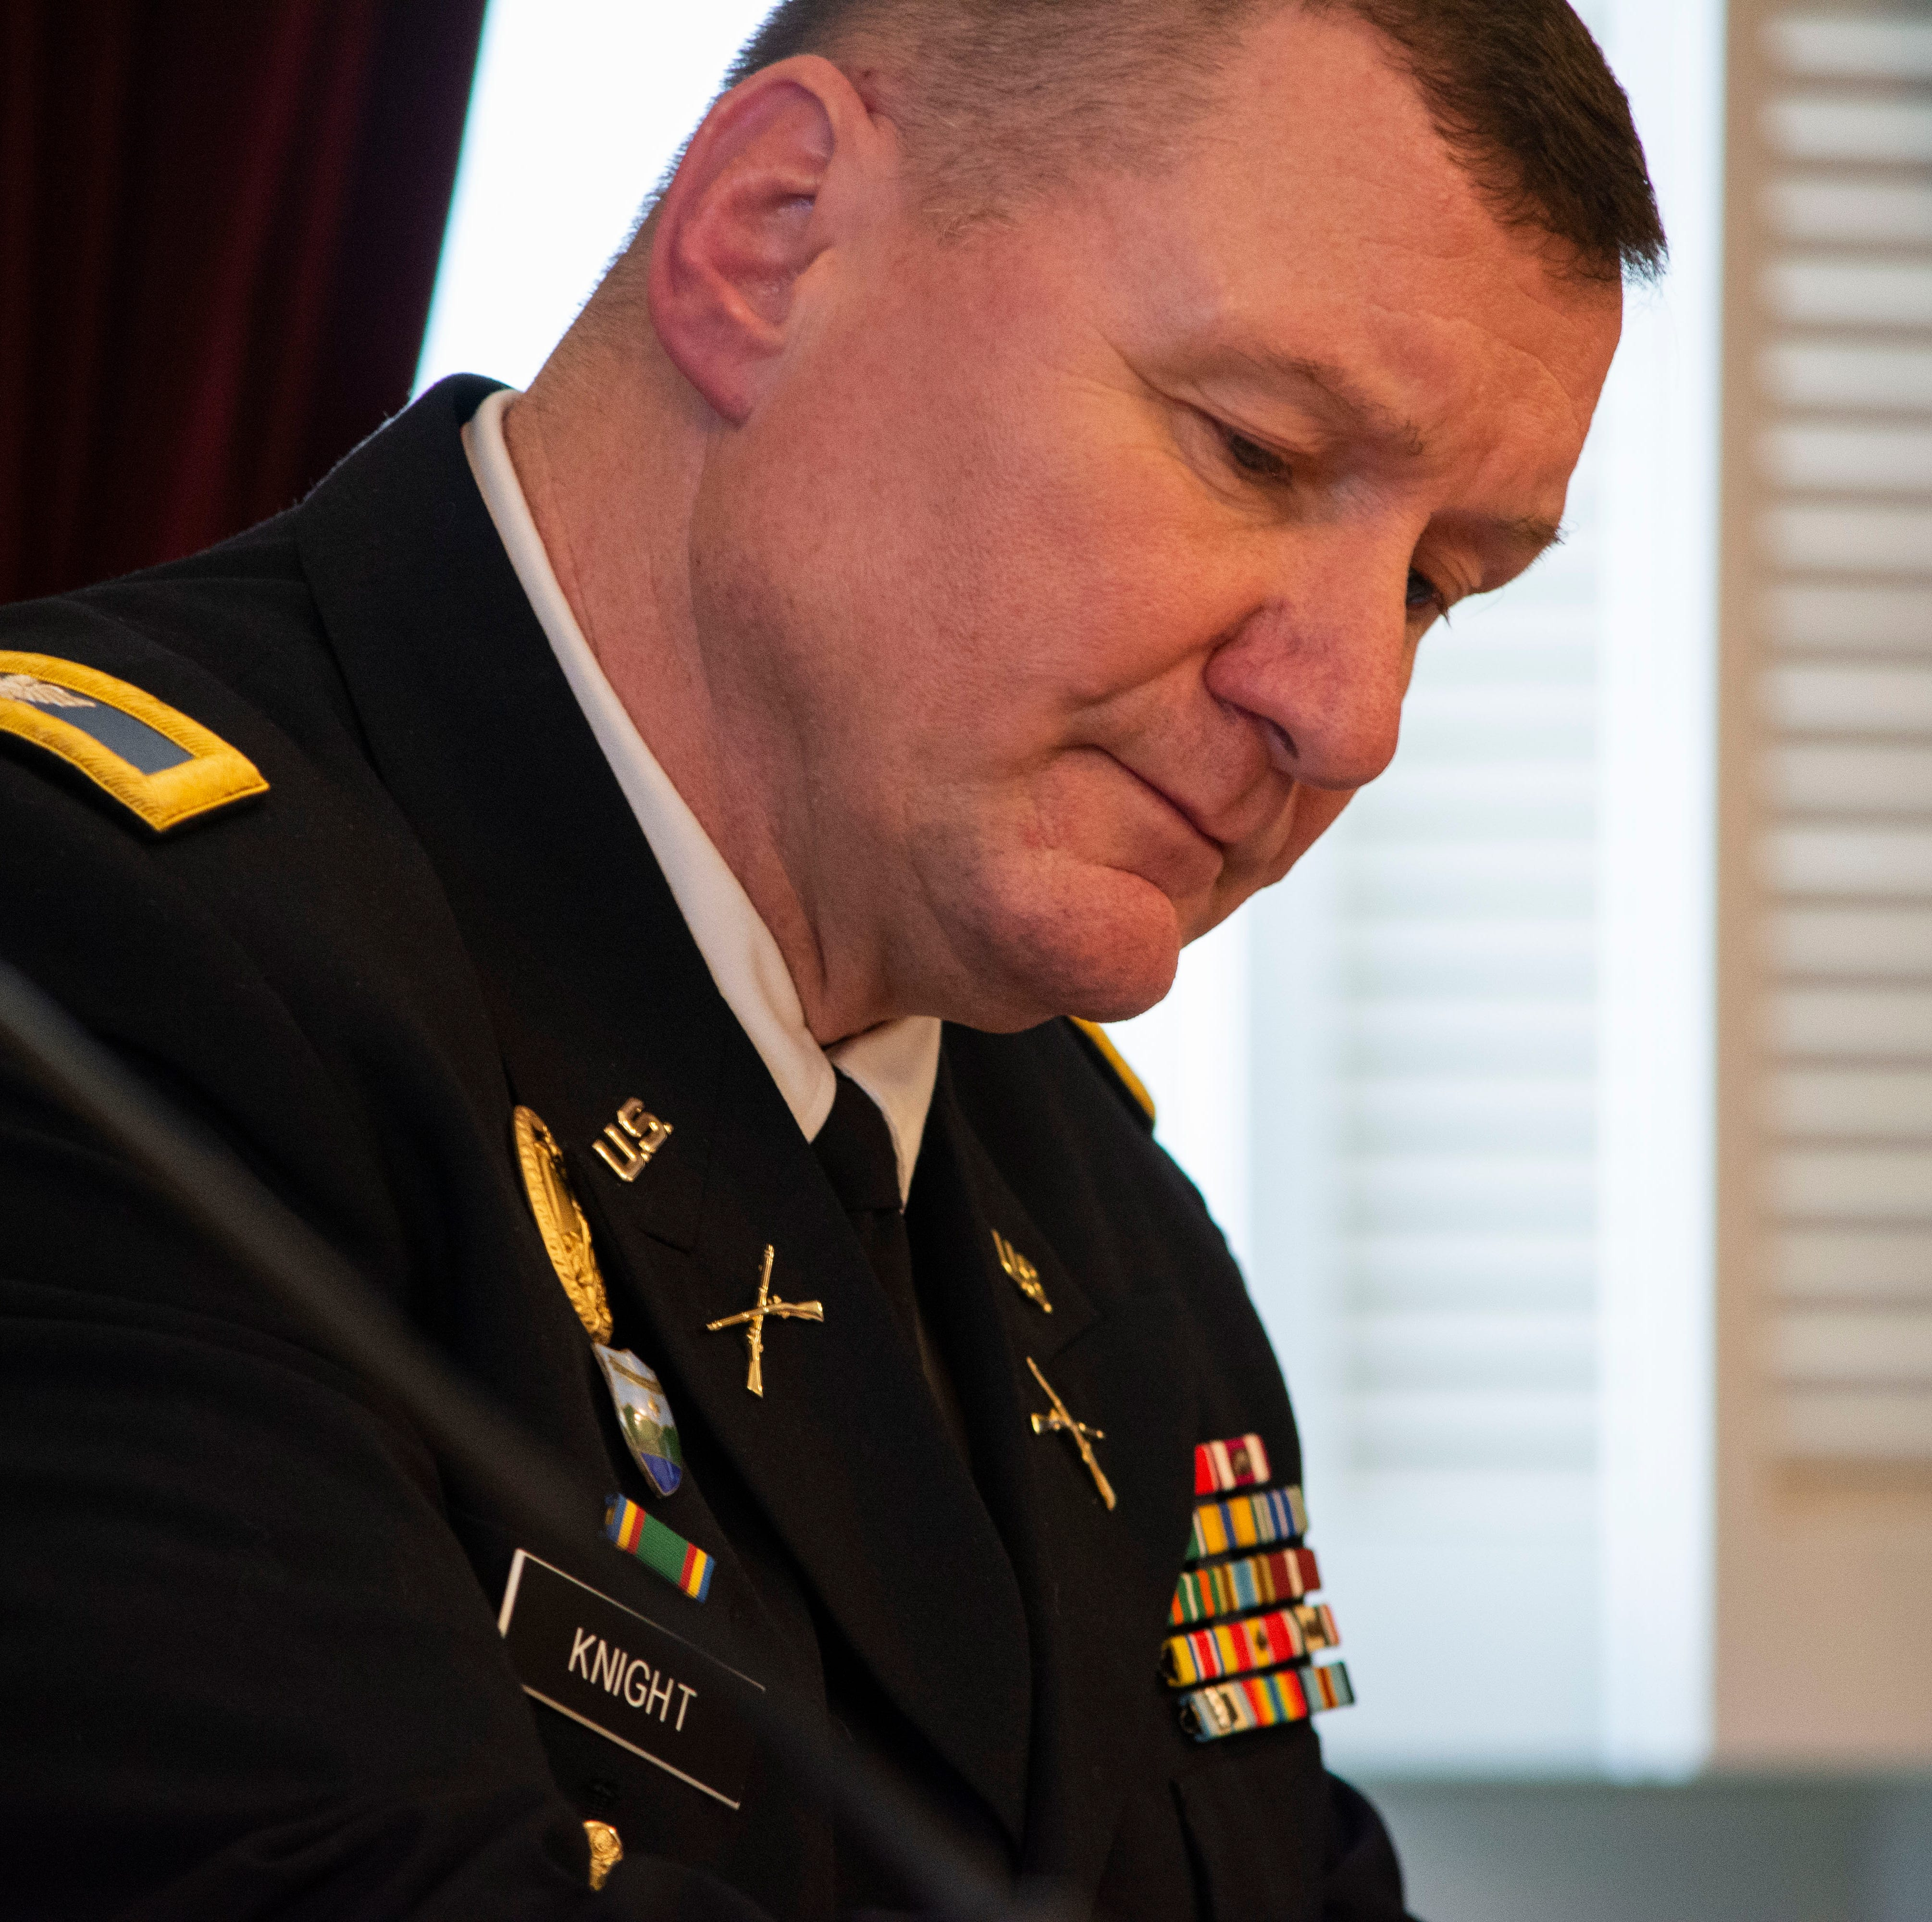 Col. Greg Knight chosen as the Vermont National Guard's next leader